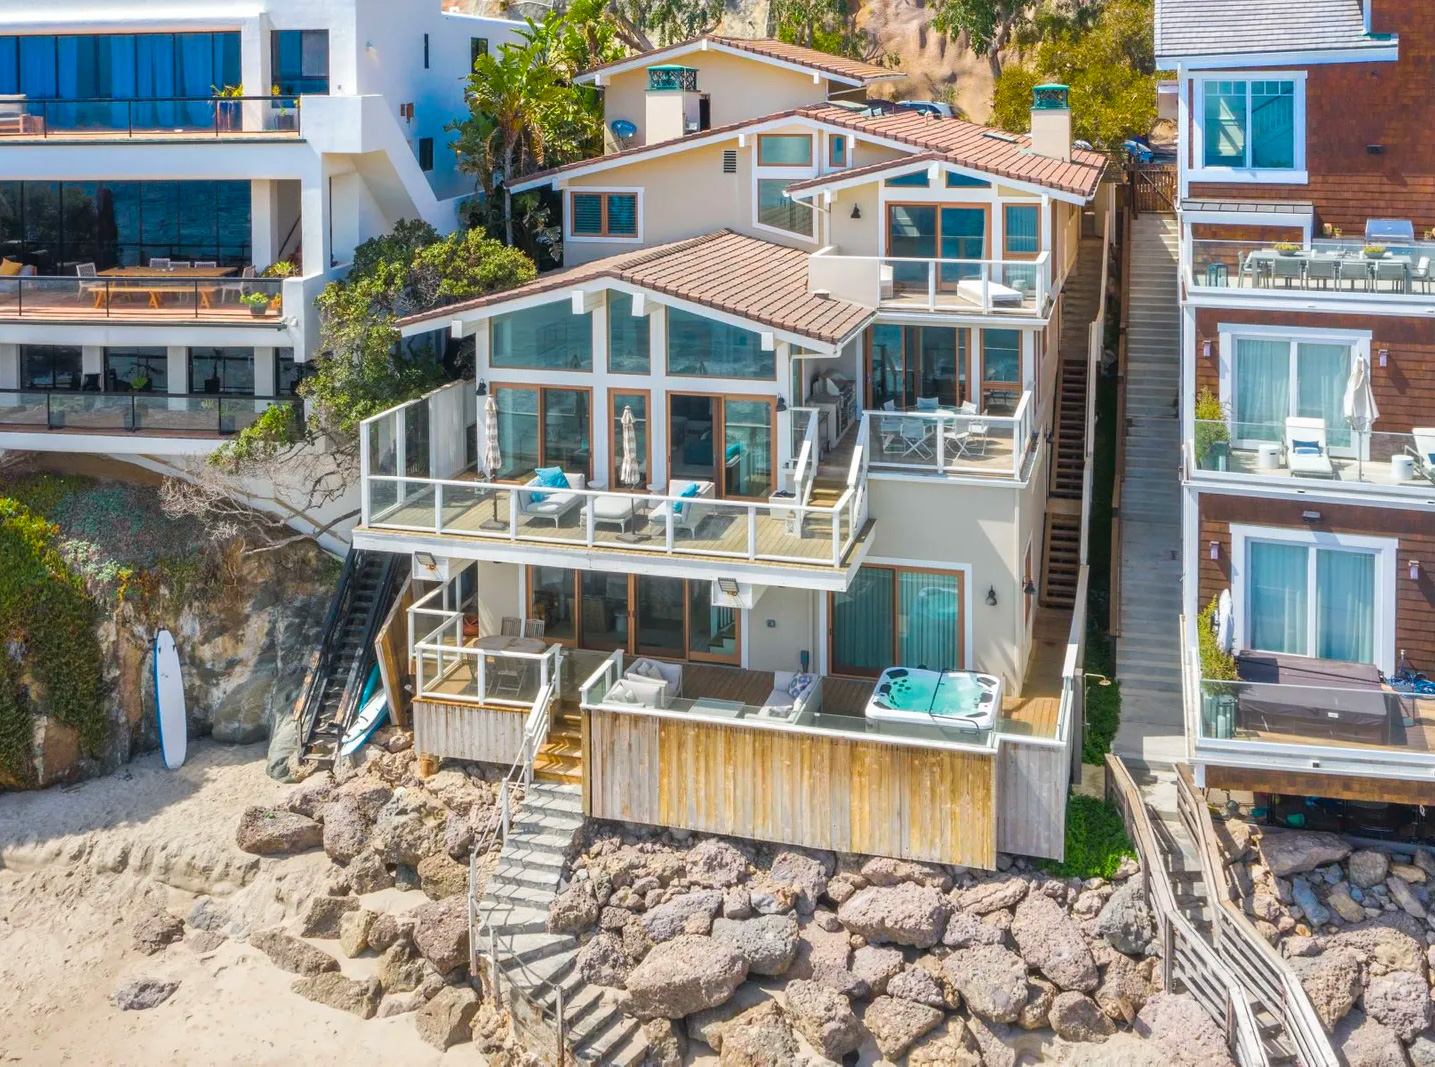 Steve McQueen's Malibu Beach House Could Now Be Yours at werd.com